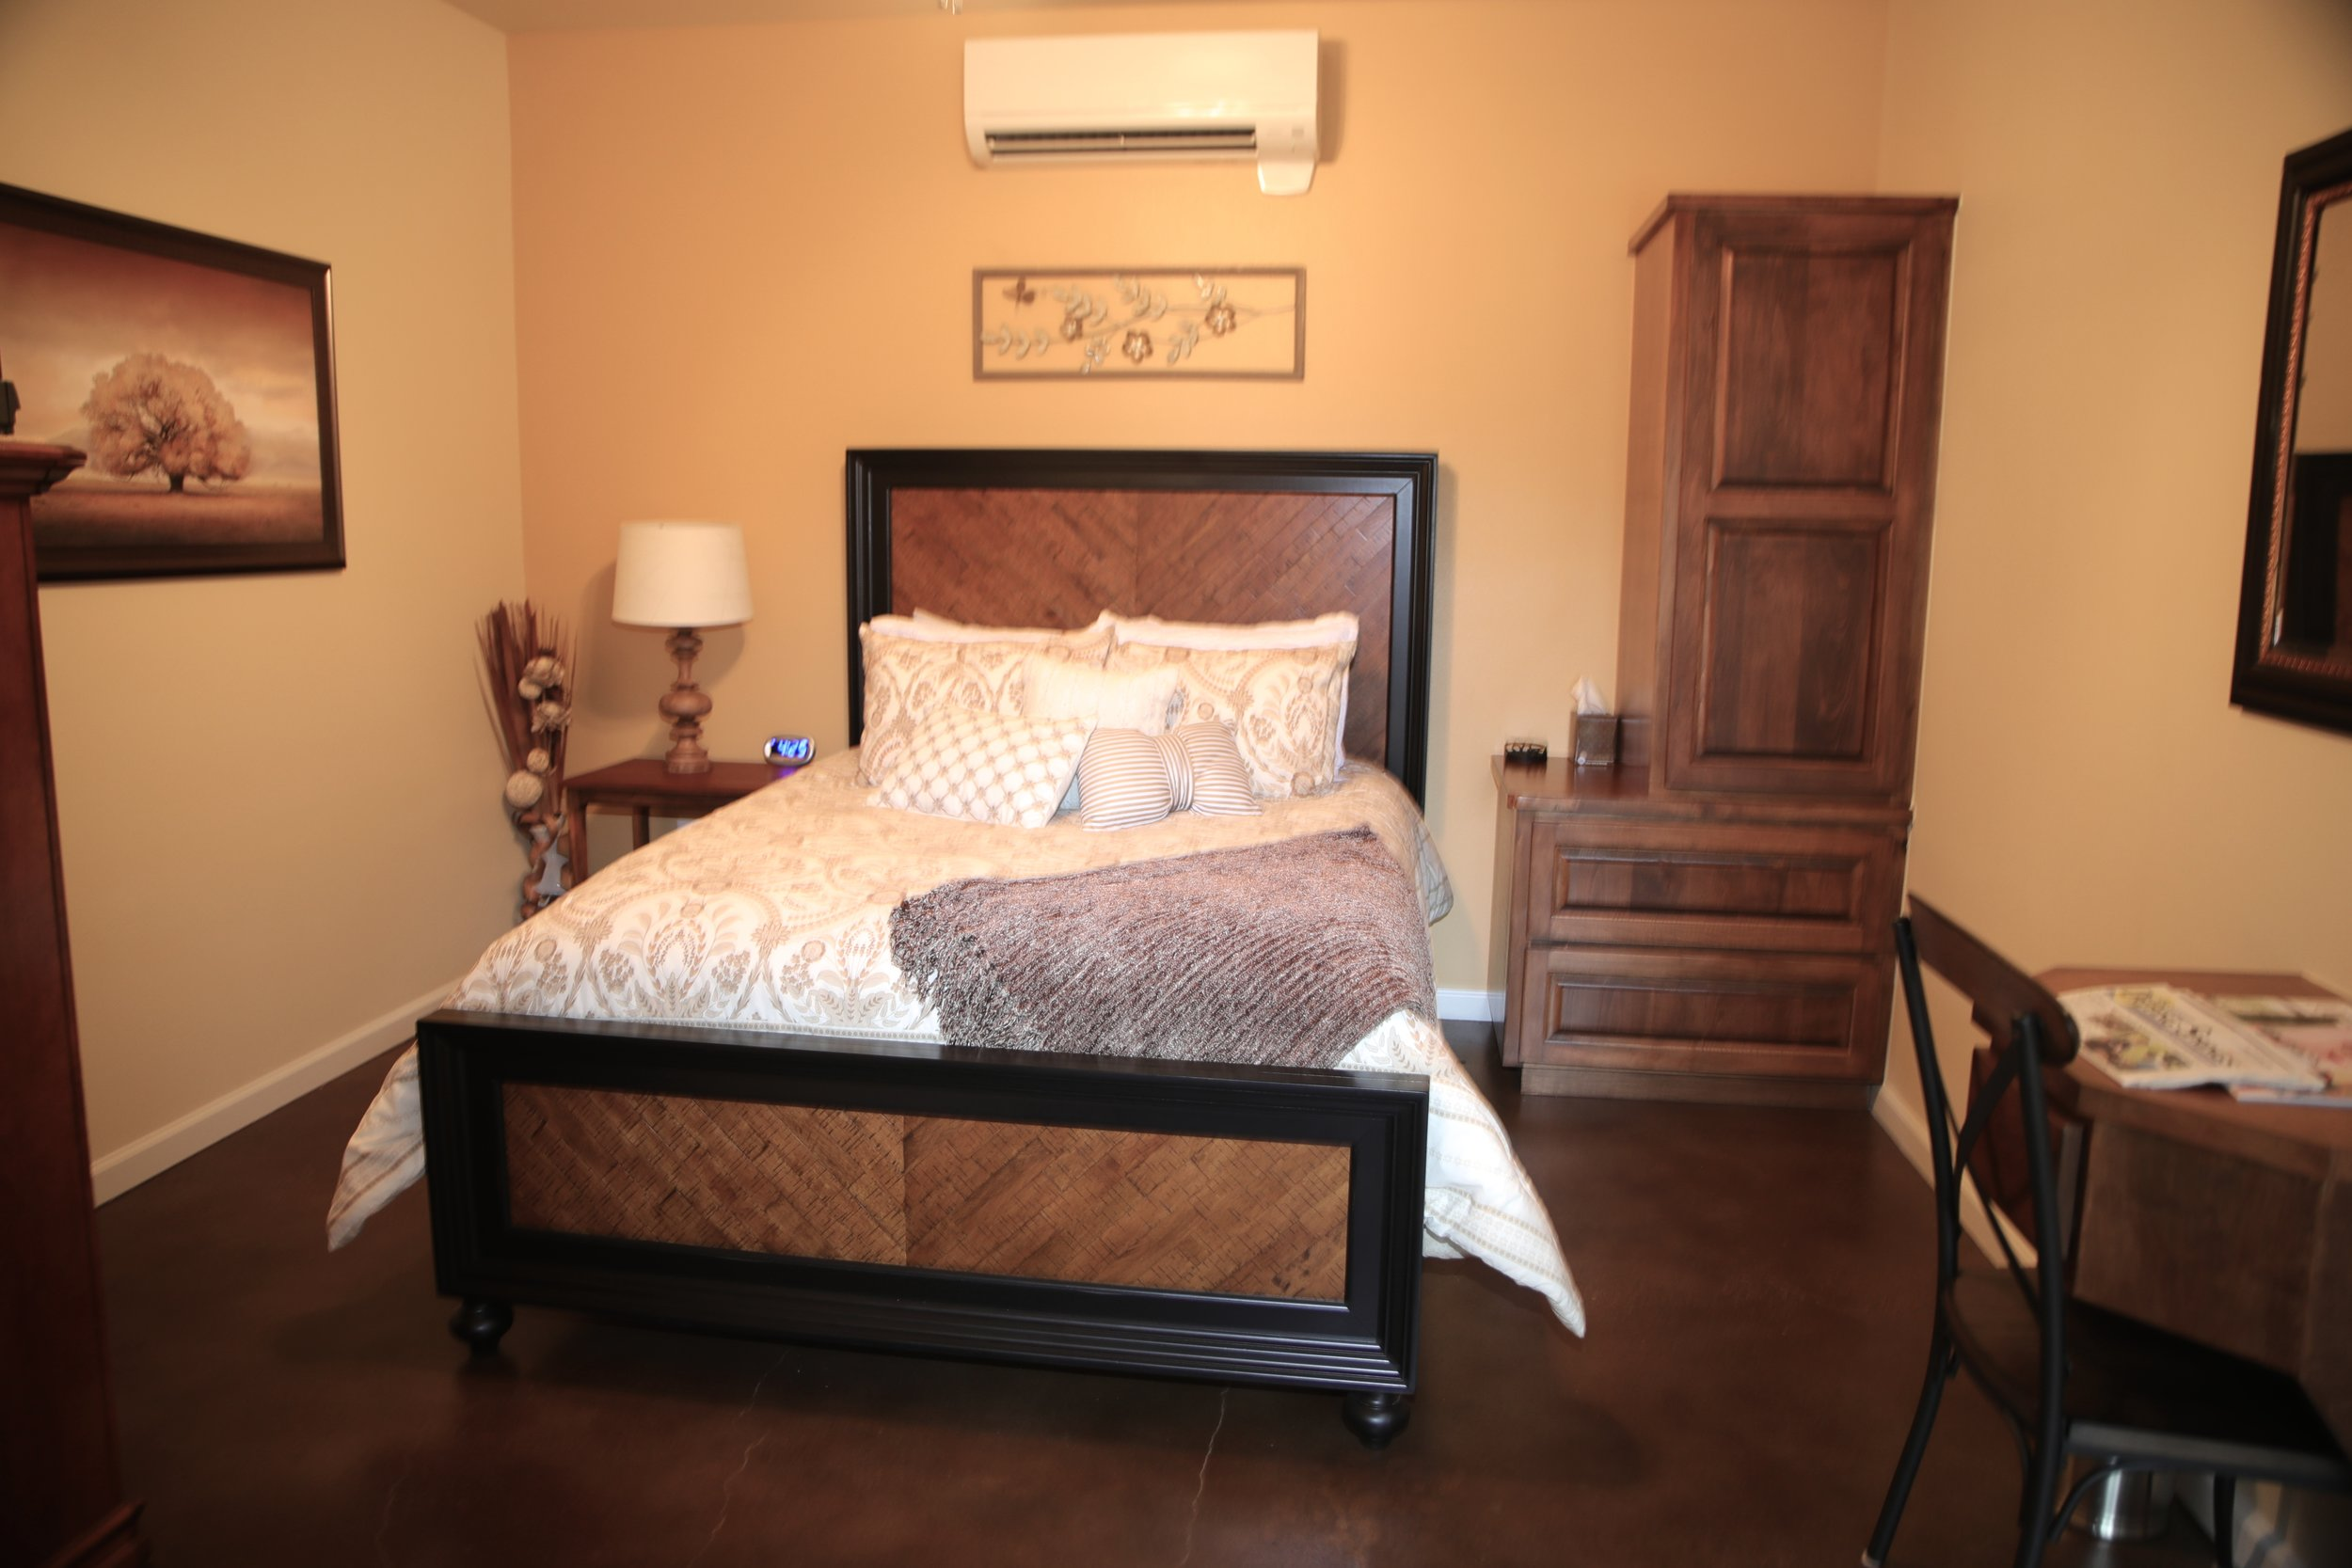 """The Salir Room - """"Salir"""" means to get out in Spanish. This room can accommodate 2 guests.The Salir Room includes a plush queen bed with touches of suede browns and creams, private walk-in bathroom with glass shower, mini refrigerator, cable & internet.Pricing Starting At $175 a night"""